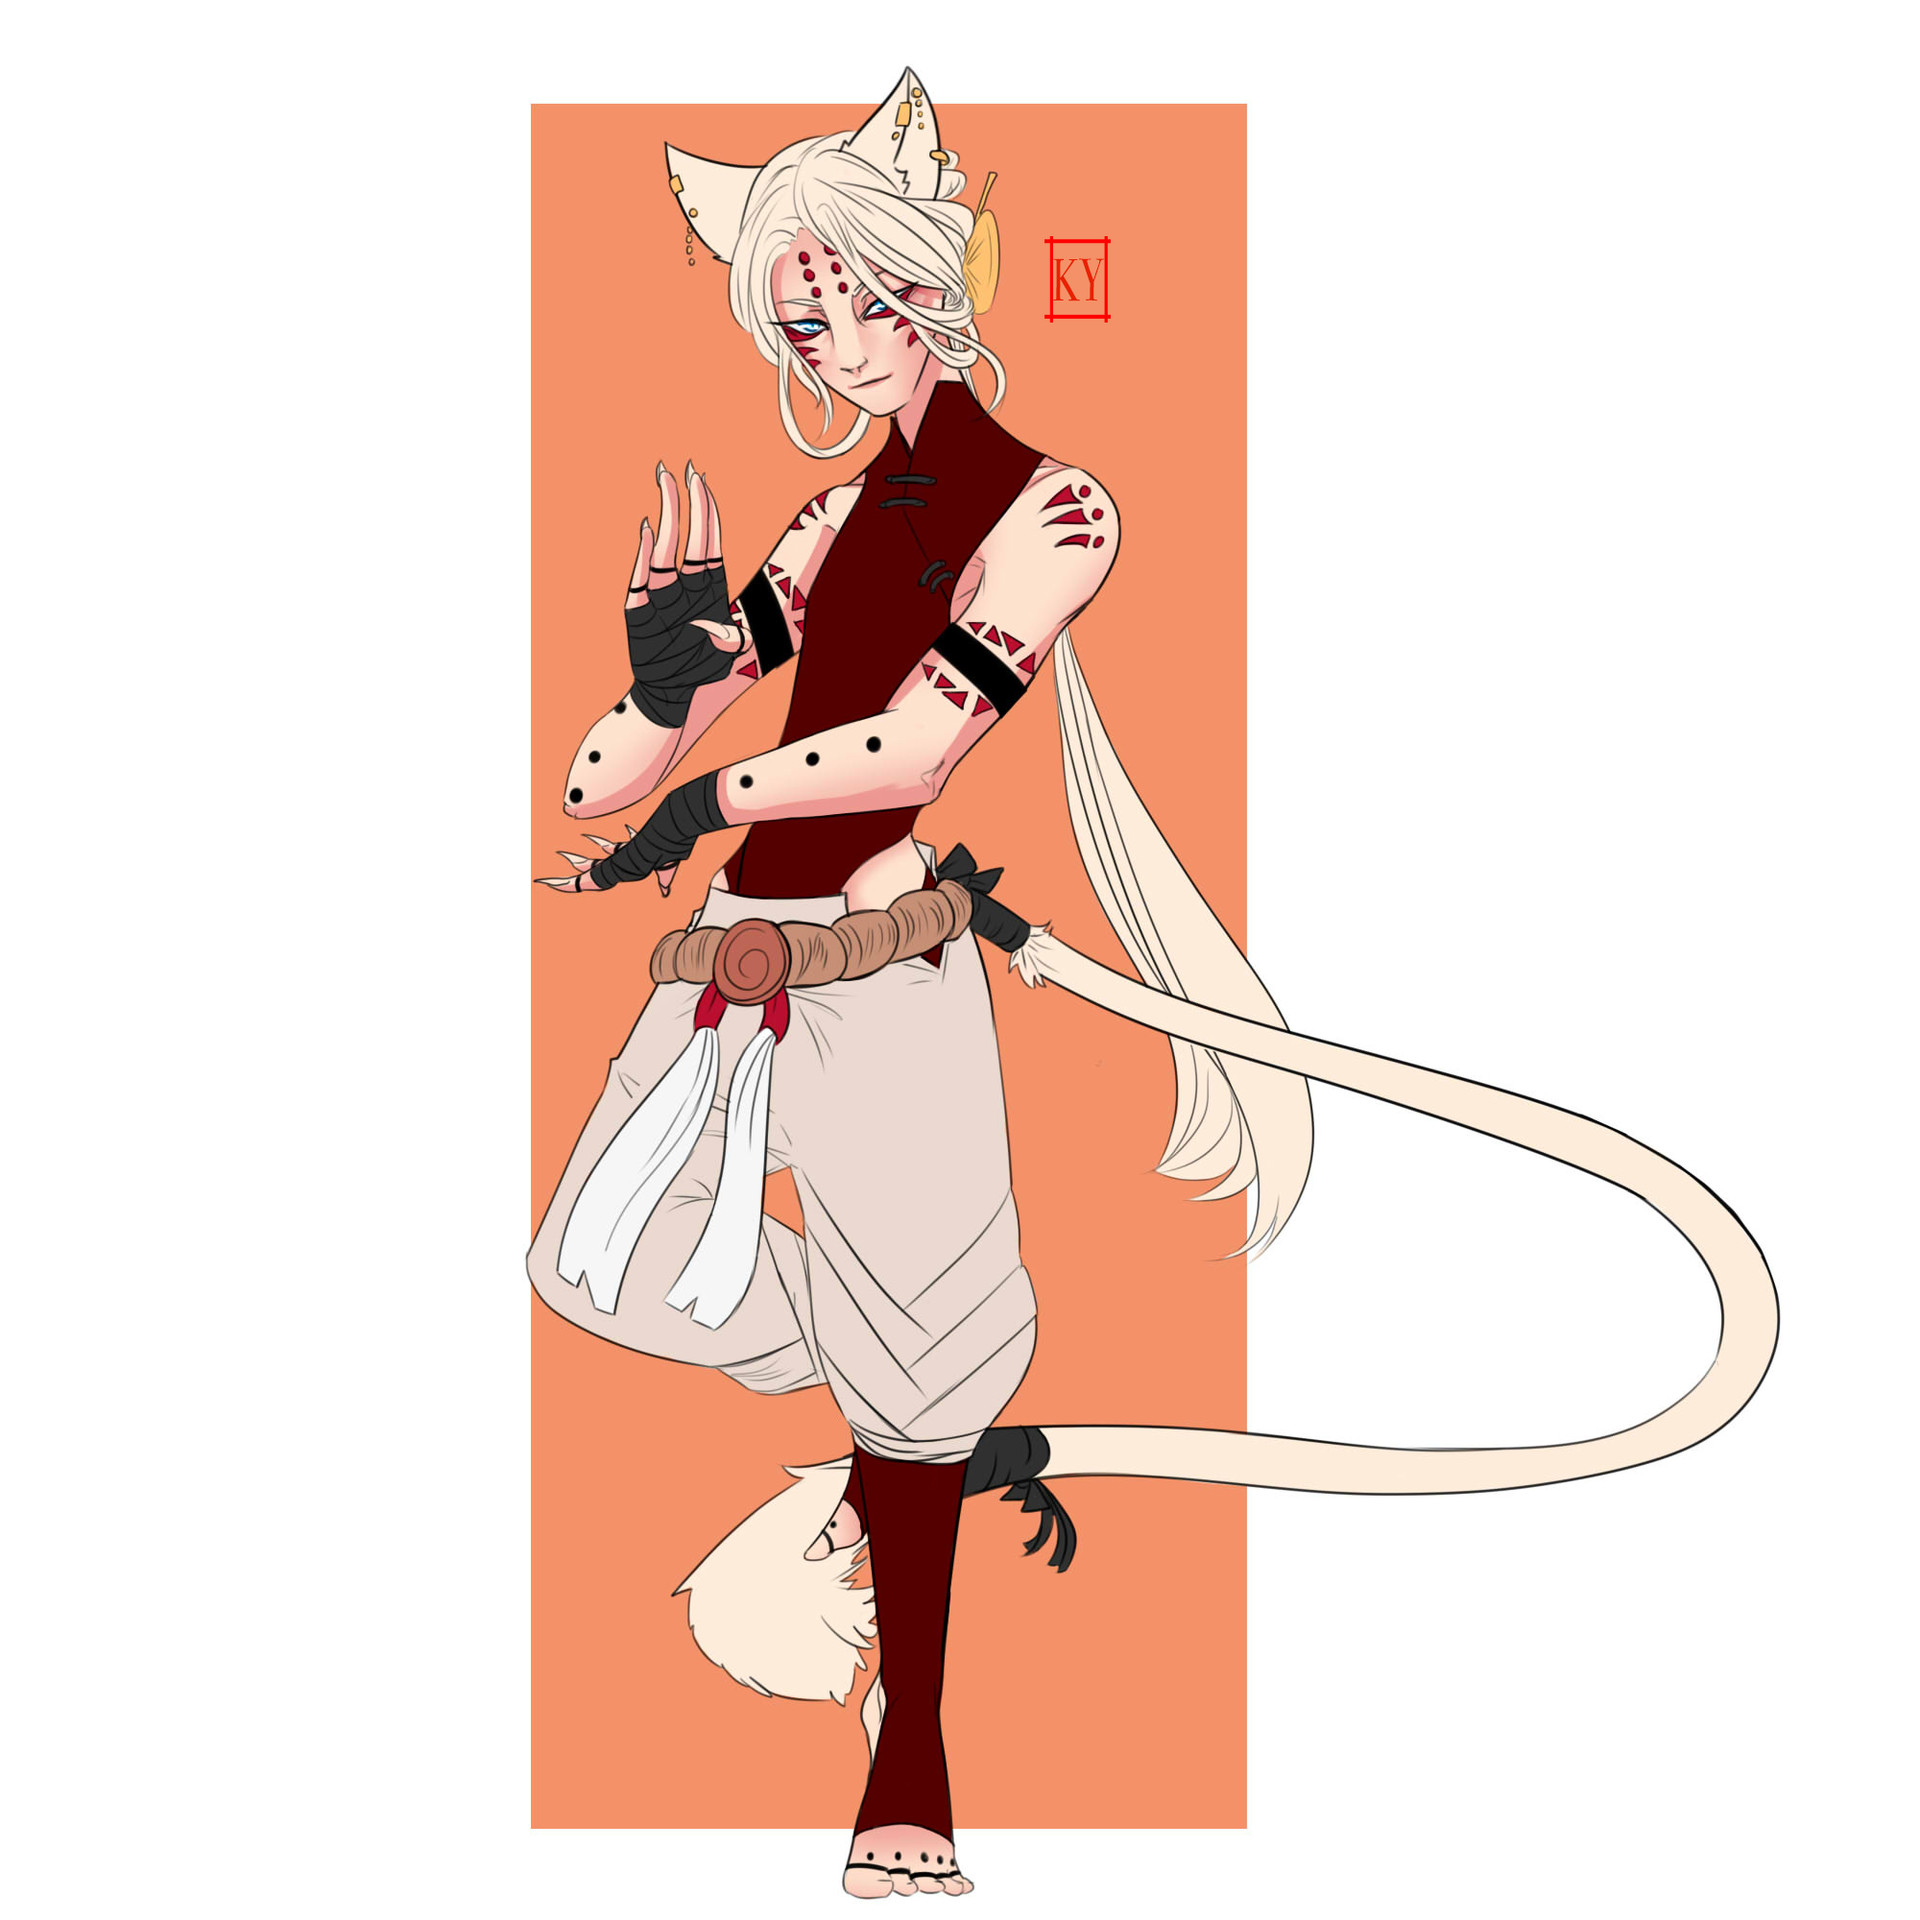 Artstation Half Tabaxi D D Brenna Dolce I mean it's always fun to play a stupidly fast character, tabaxi beat woodelves on movement speed as monks. artstation half tabaxi d d brenna dolce